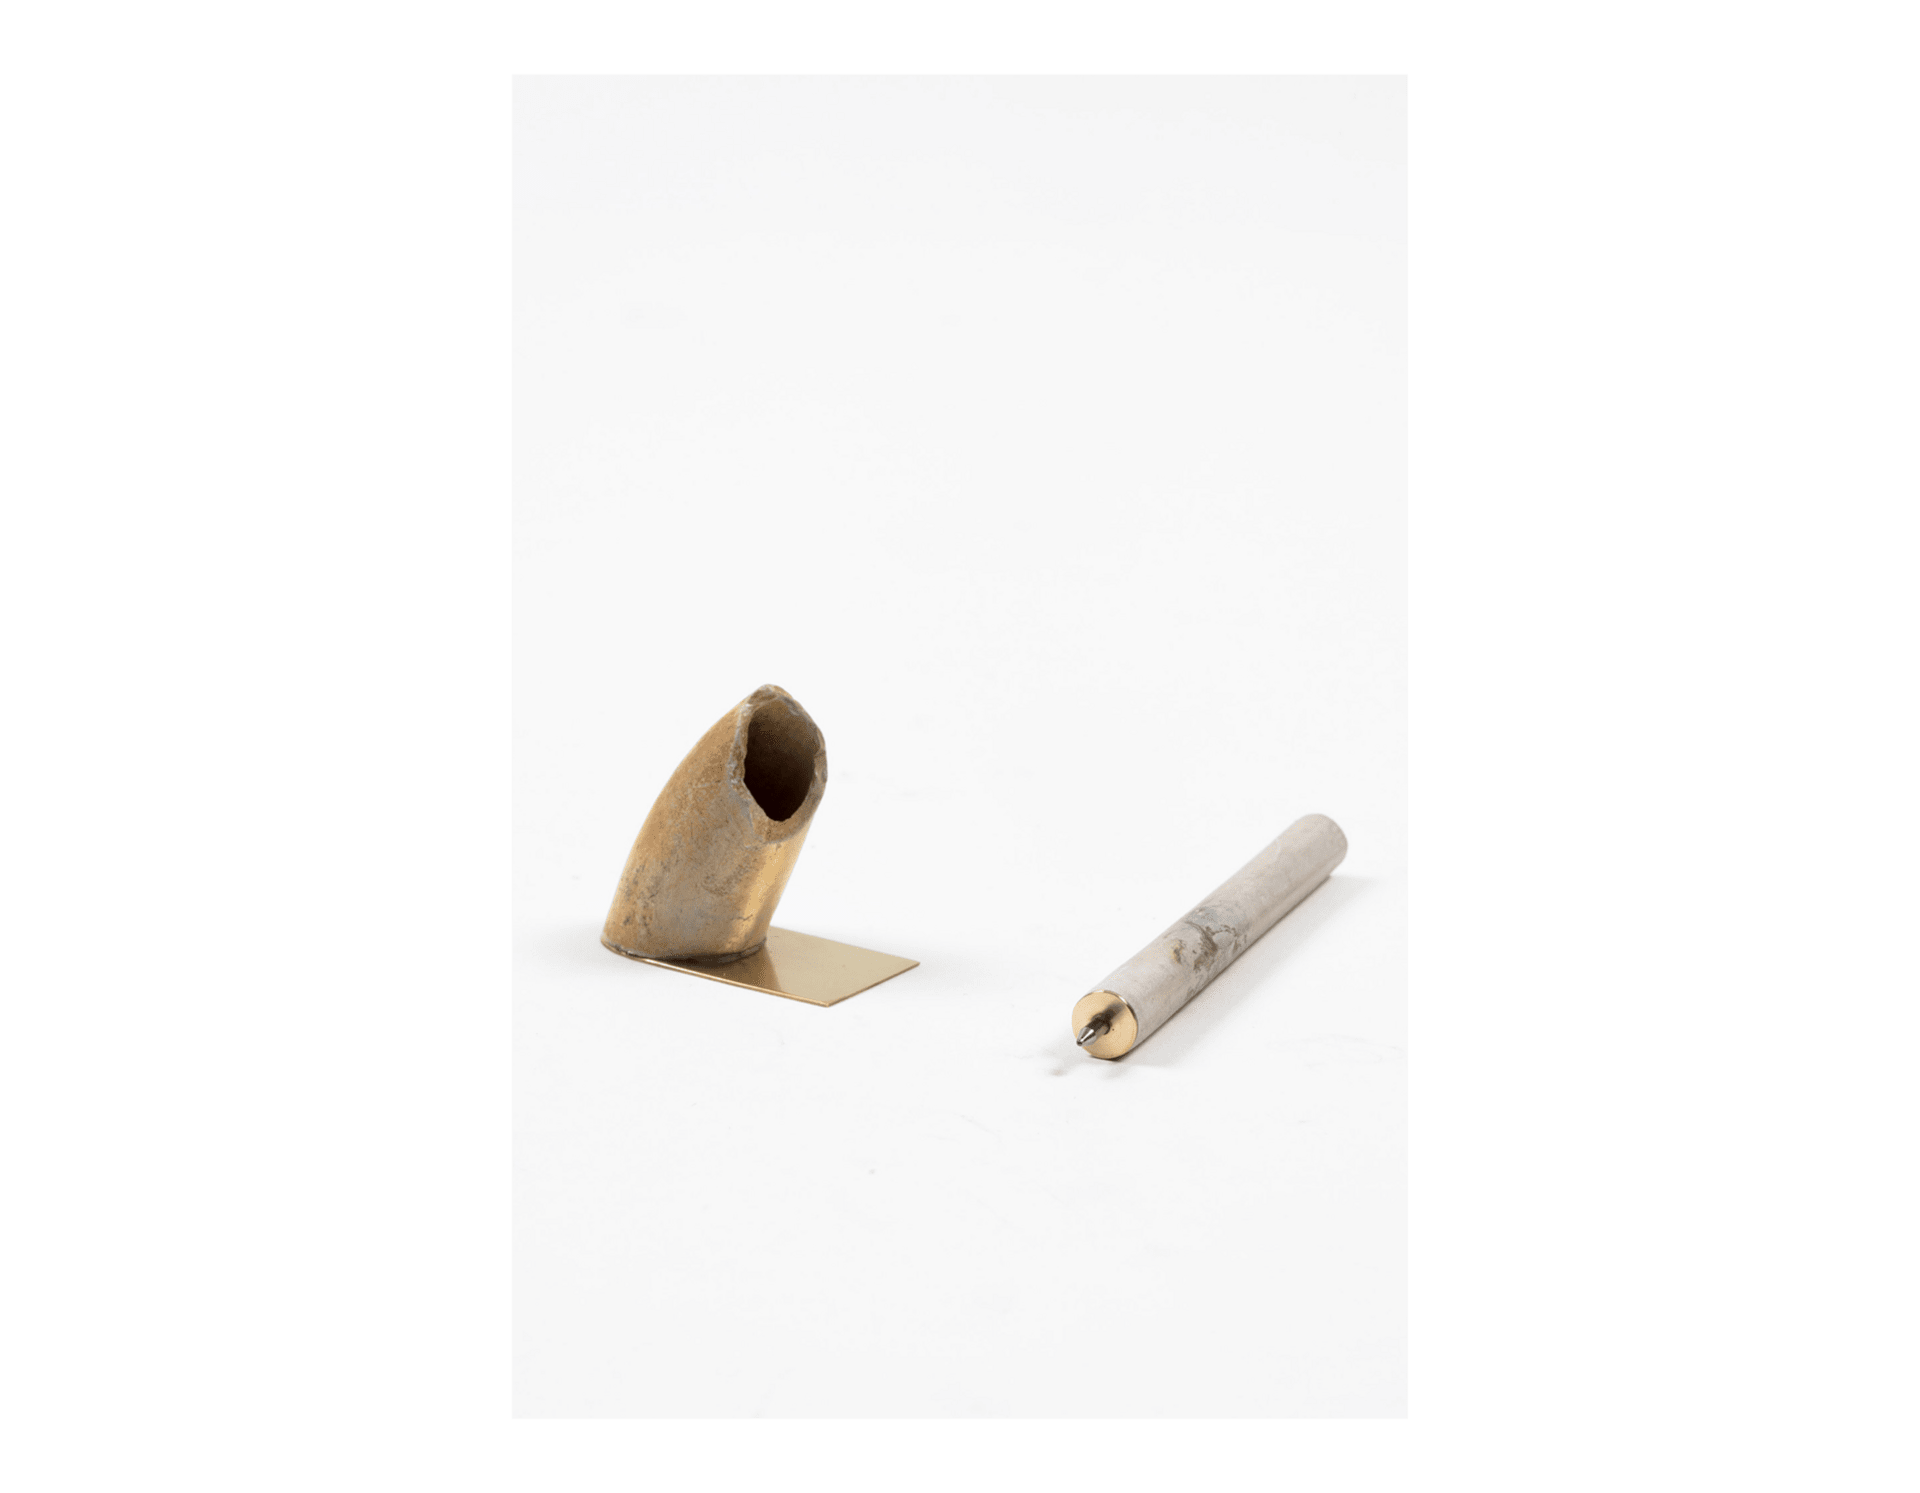 Pen and holder from clay pipe